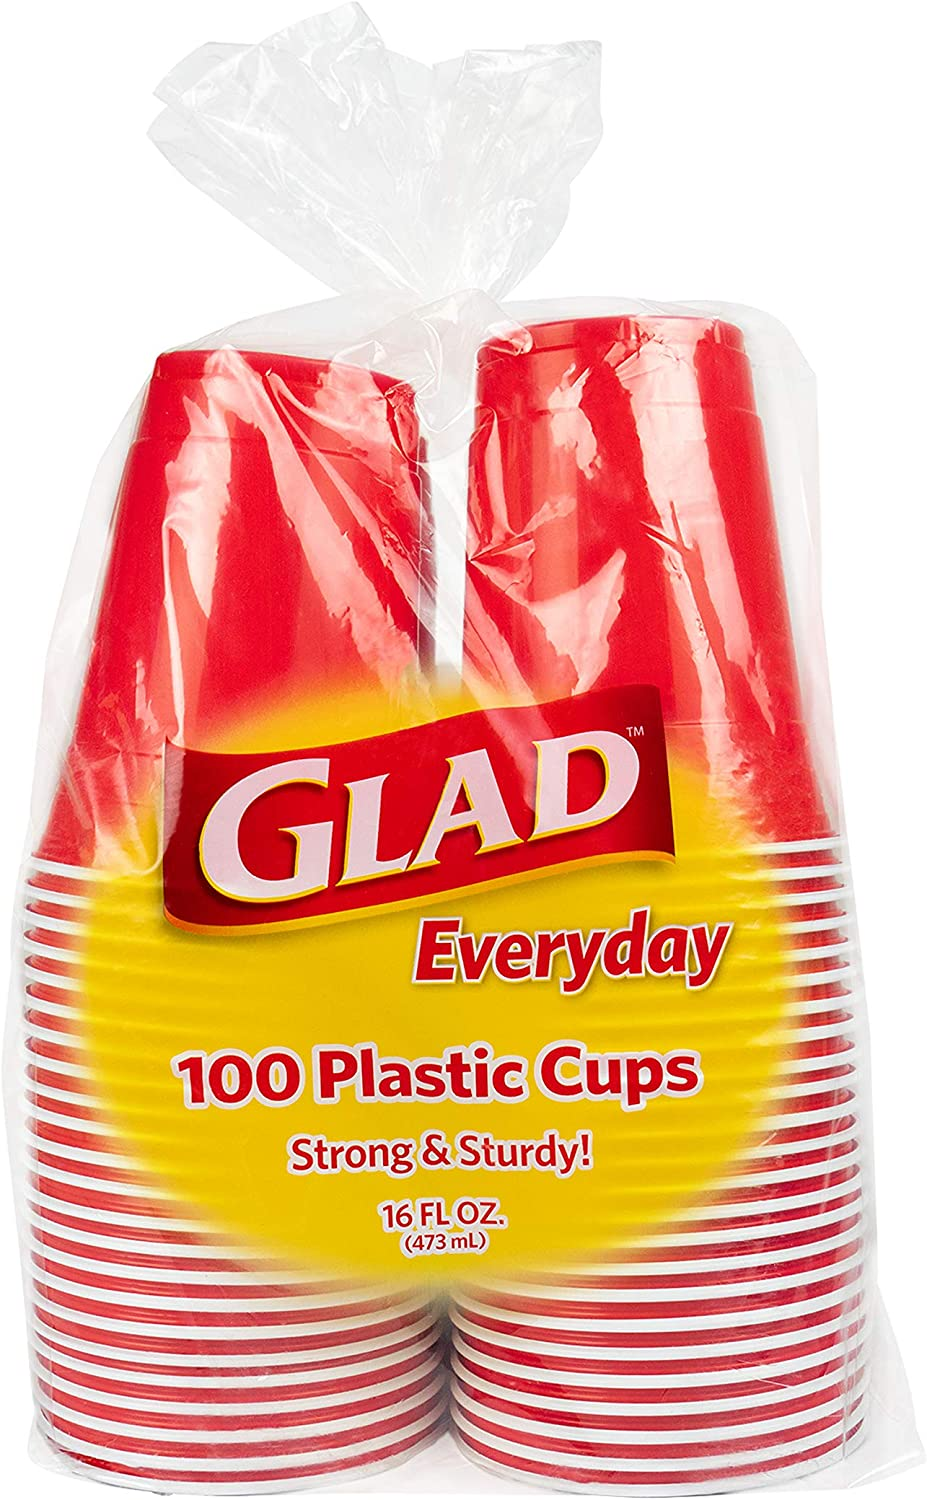 Glad Everyday Disposable Plastic Cups | Red Plastic Cups, 100 Count | Strong and Sturdy Red Plastic Party Cups for All Occasions, Holds 16 Ounces